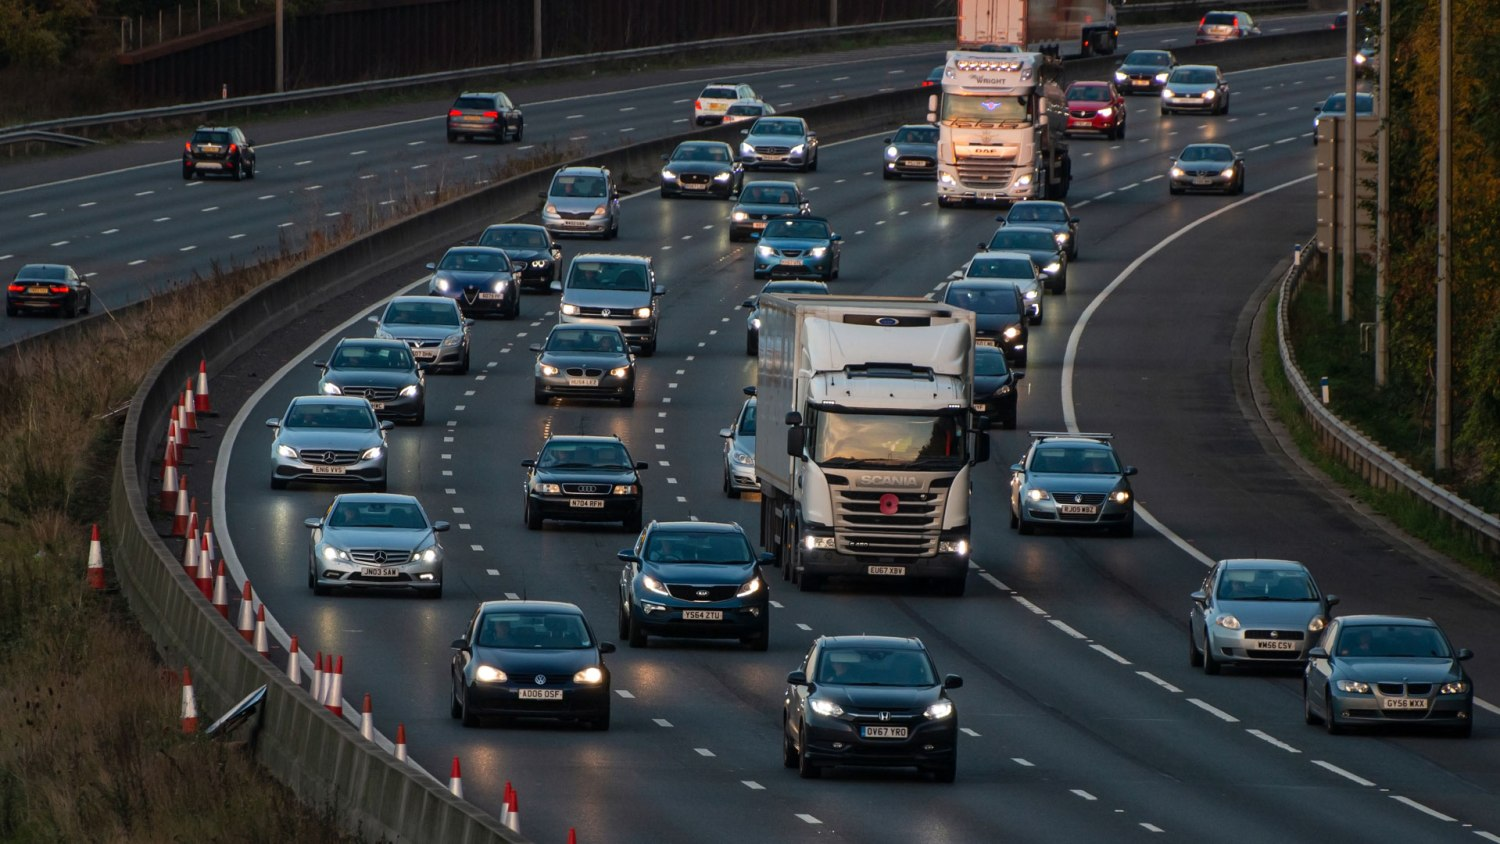 Commuters on the M25